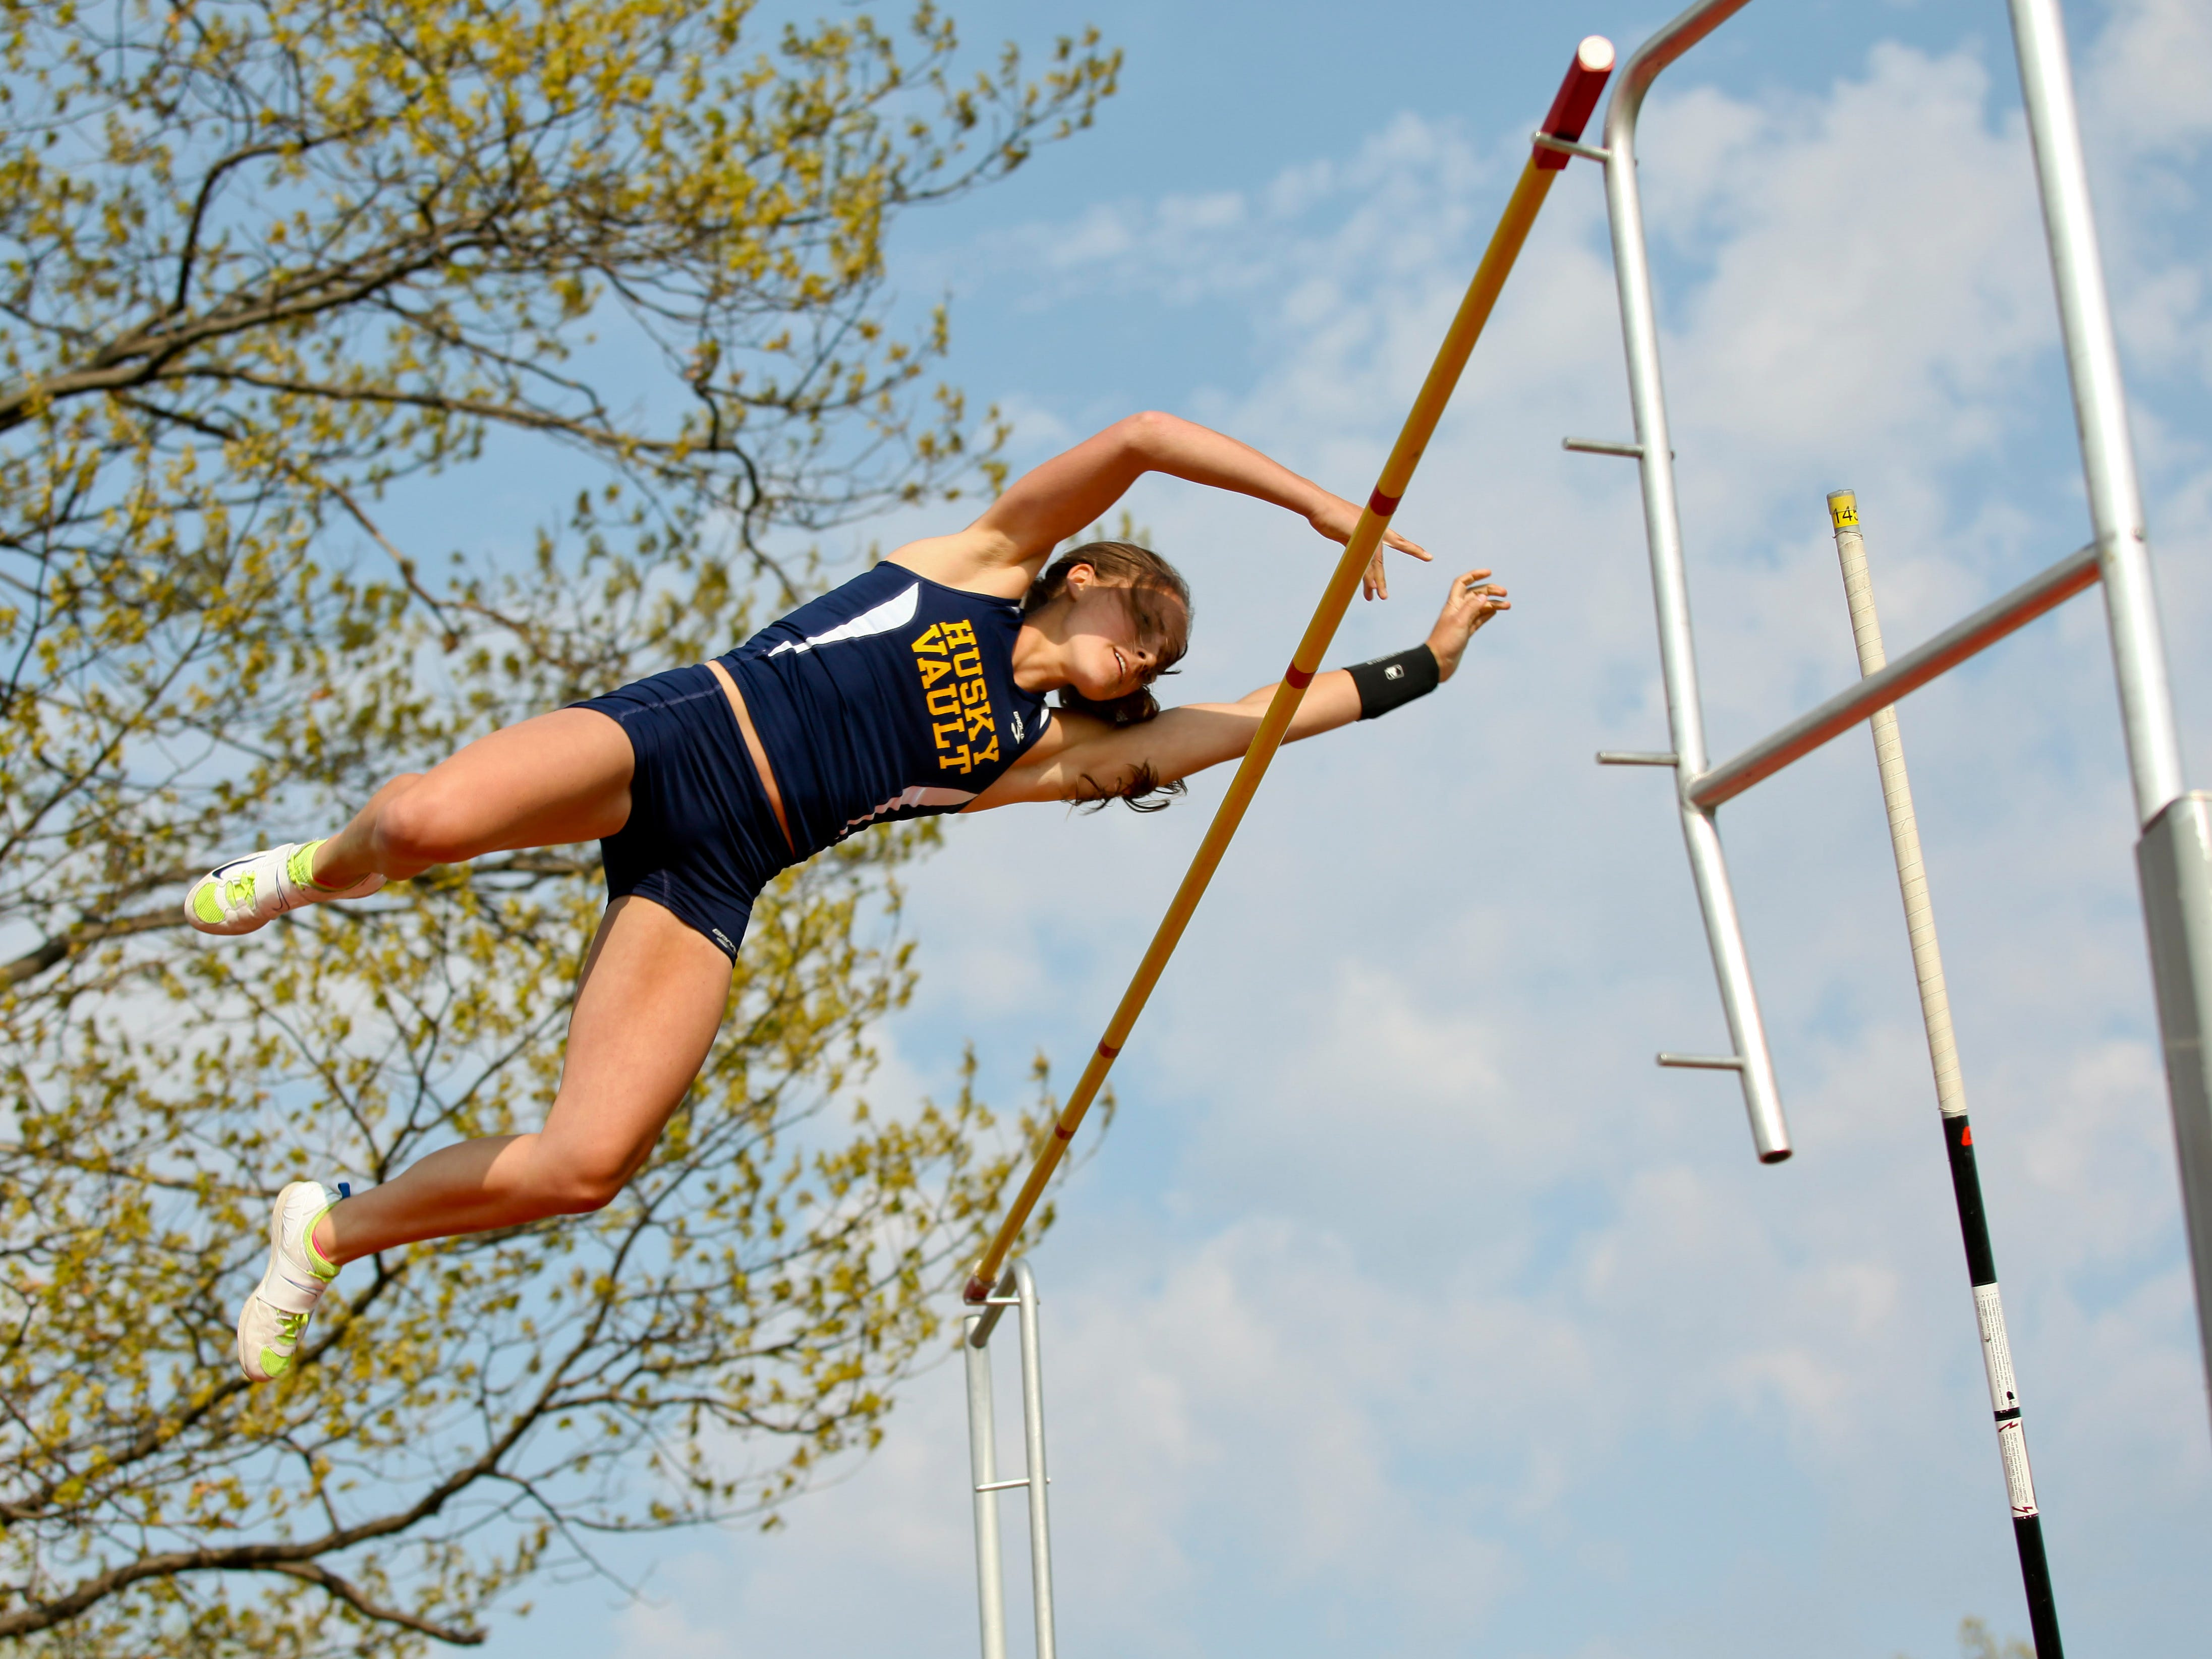 Port Huron Northern junior Mackenzie Shell set a state record in the pole vault Tuesday at Port Huron Northern High School. JEFFREY SMITH/TIMES HERALD.